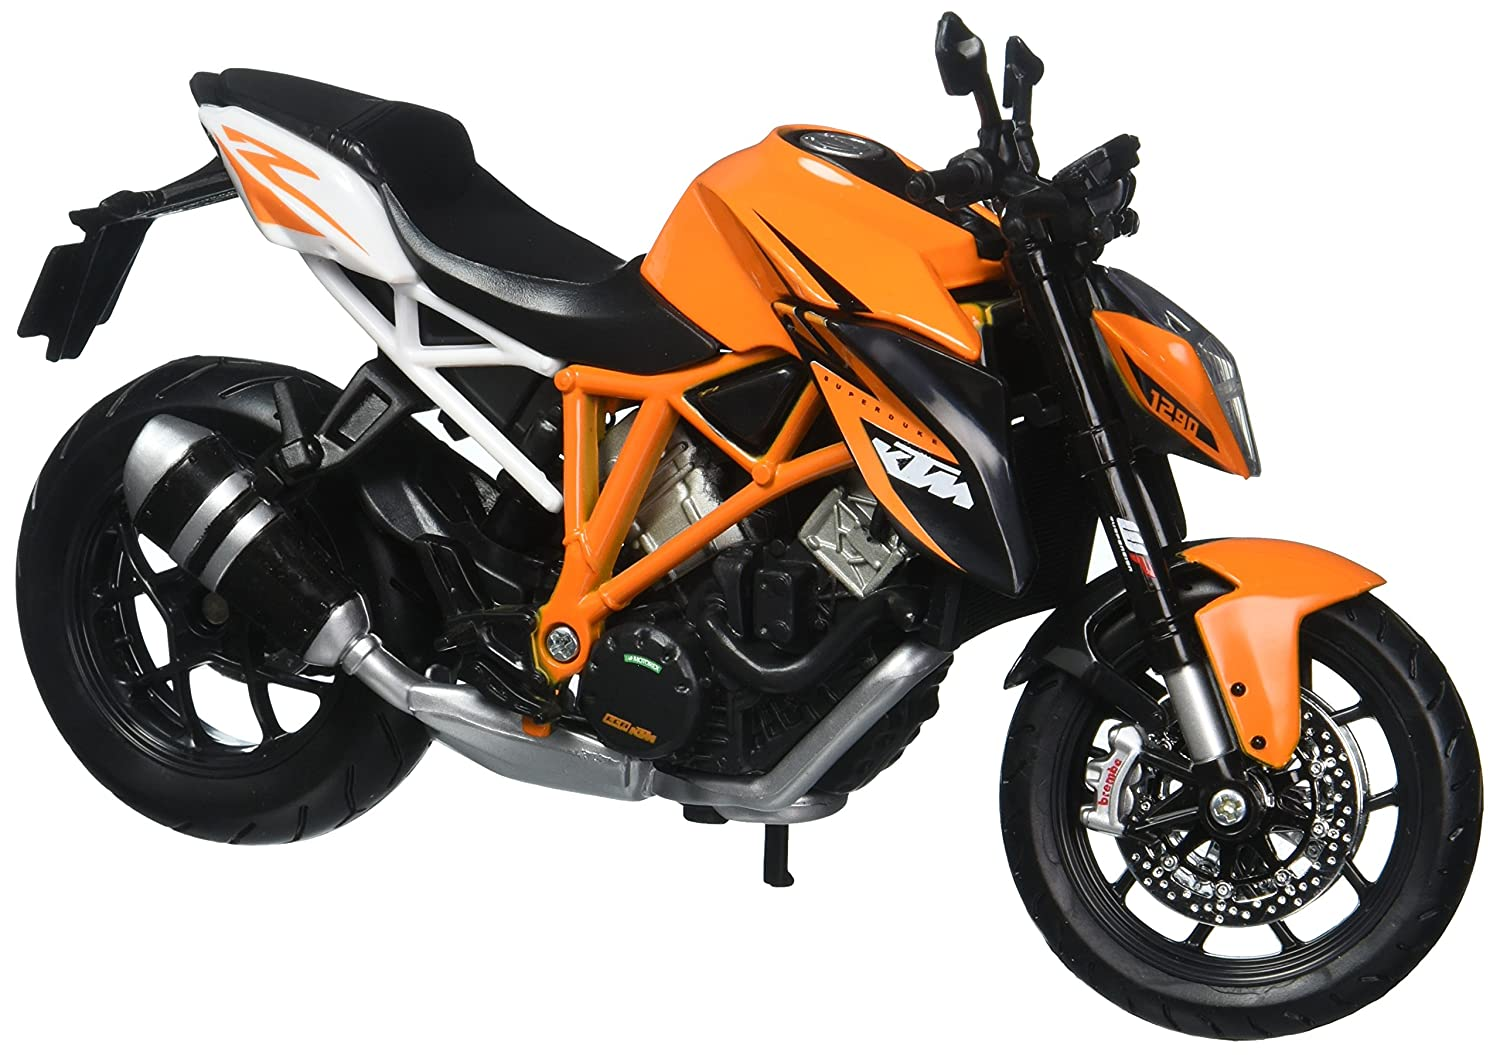 Buy maisto ktm 1290 112 scale duke r bike black and orange online at low prices in india amazon in